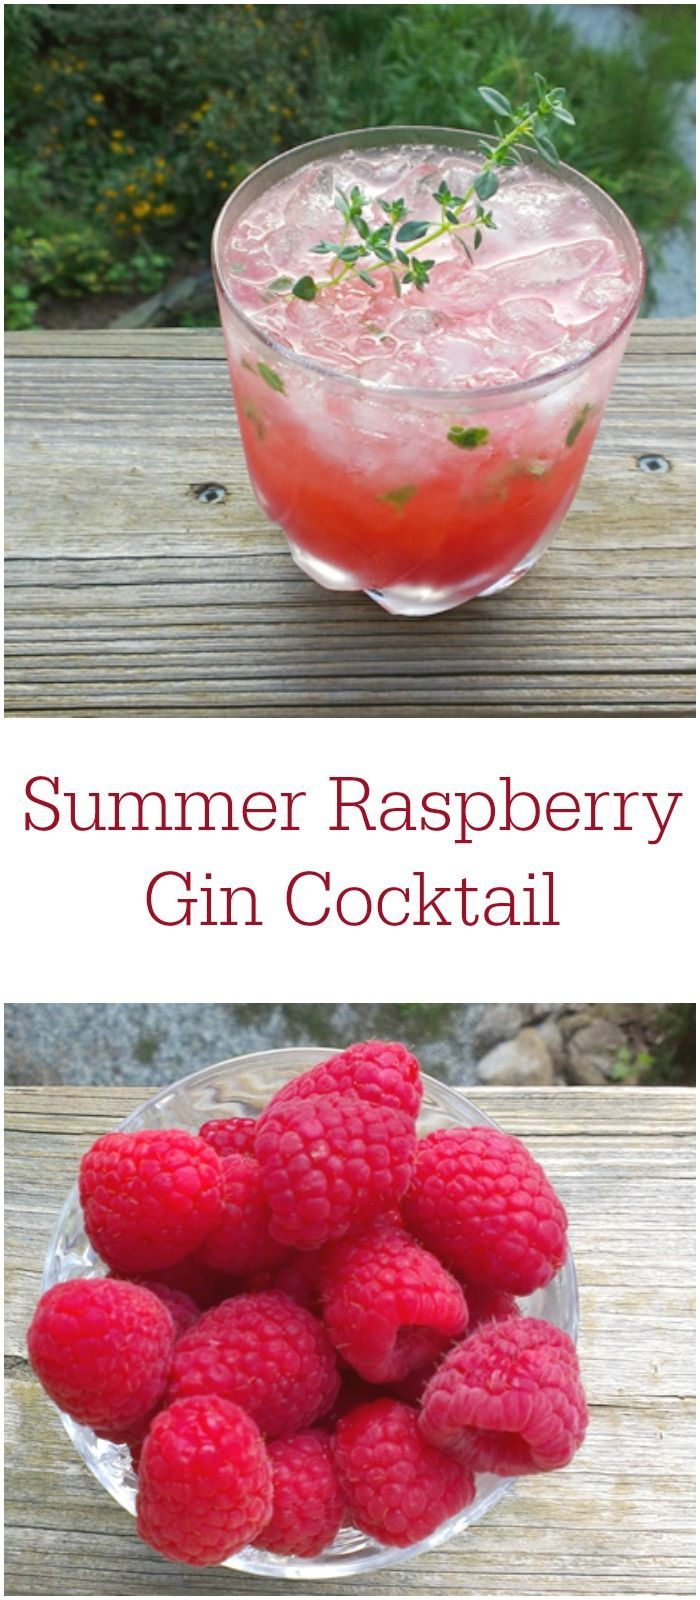 Cool down with this vegan Summer Raspberry Gin Cocktail!